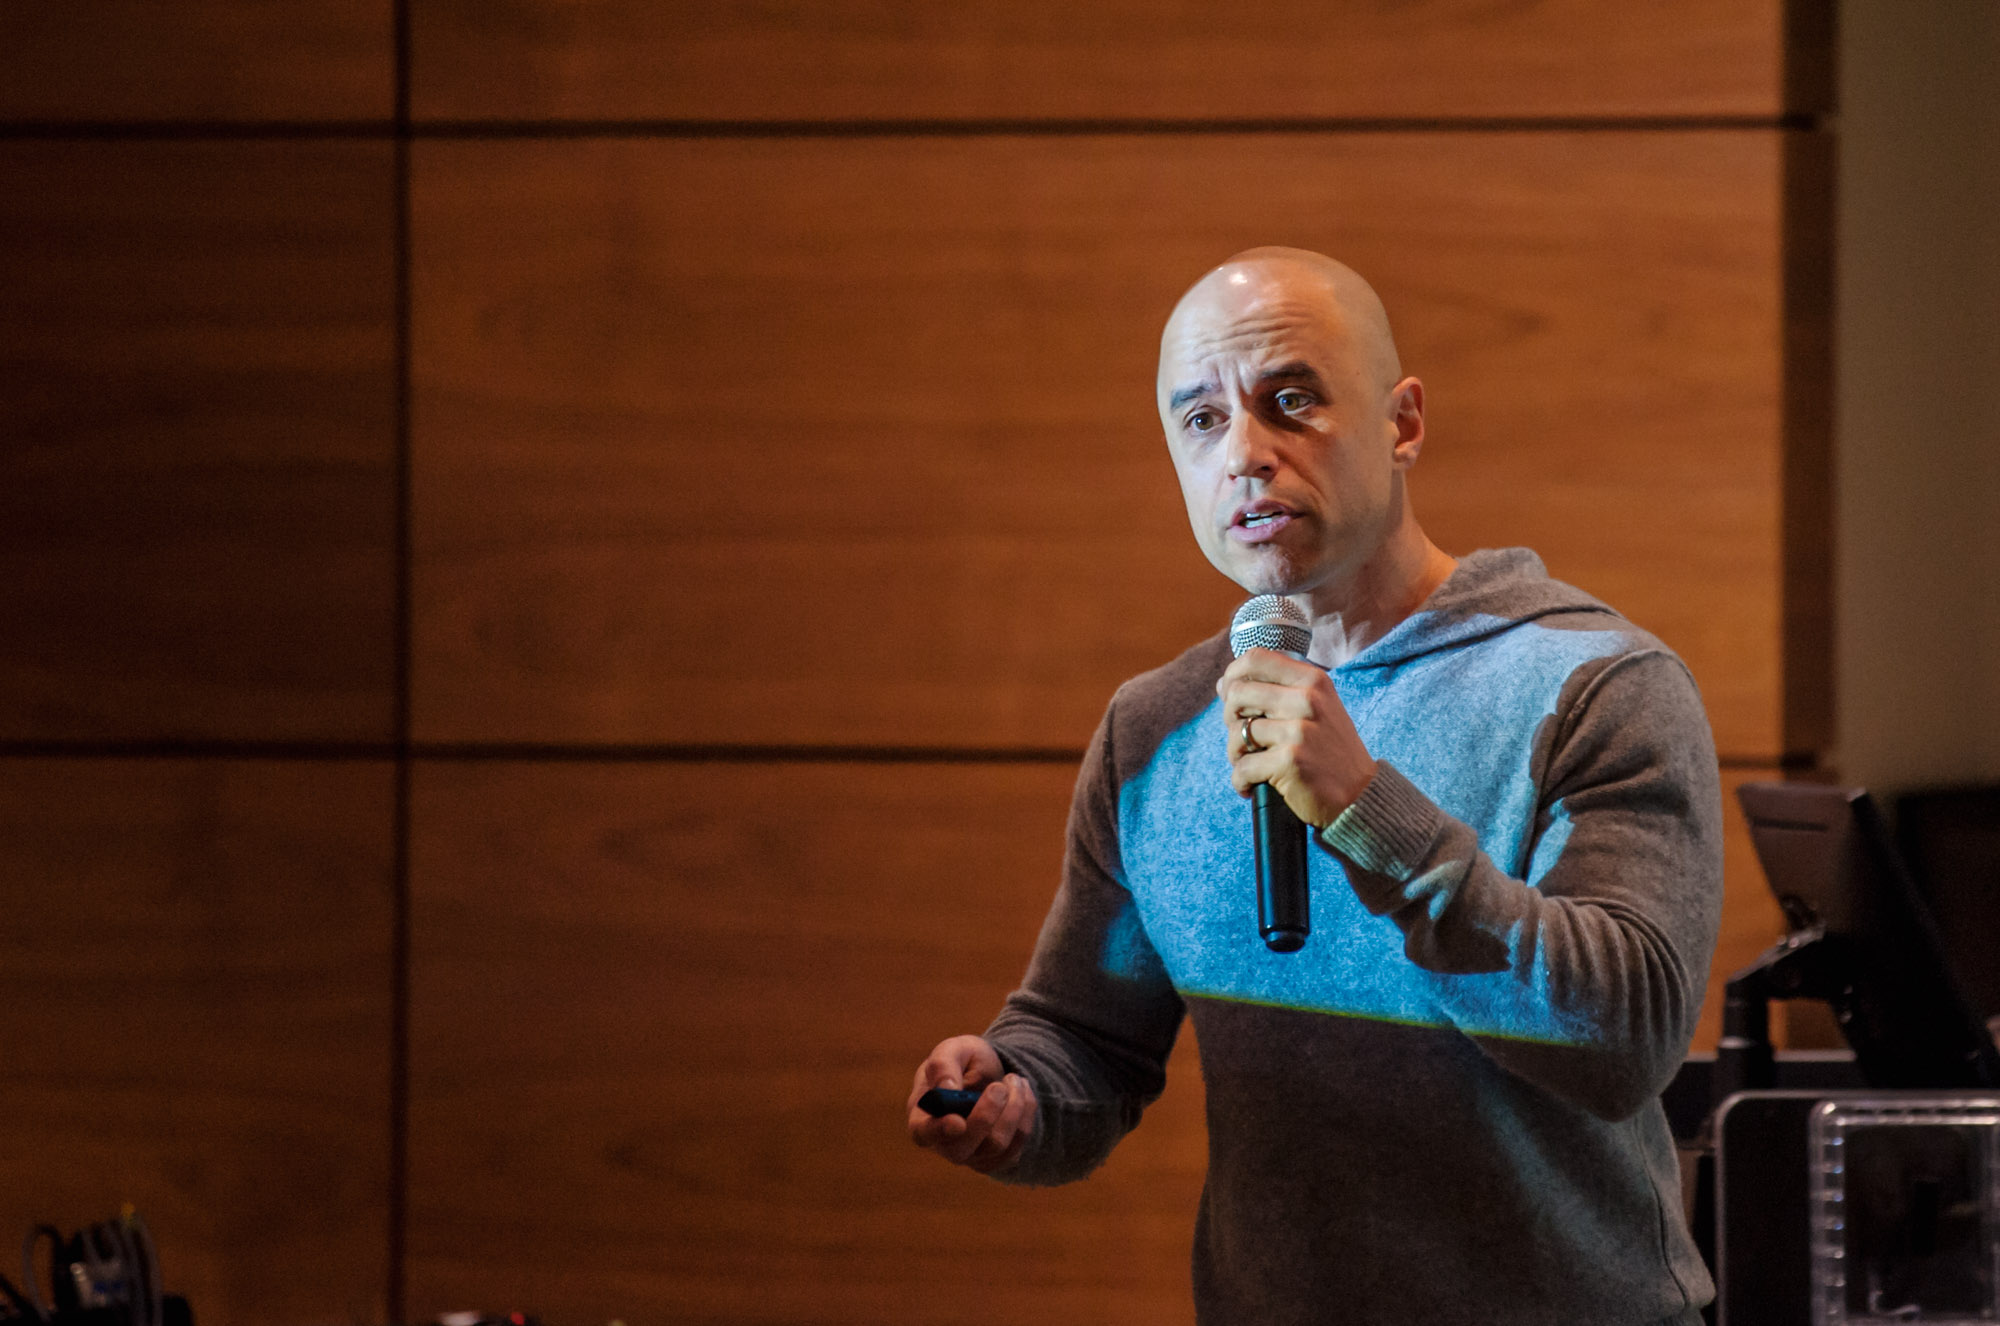 ZDoggMD giving a presentation